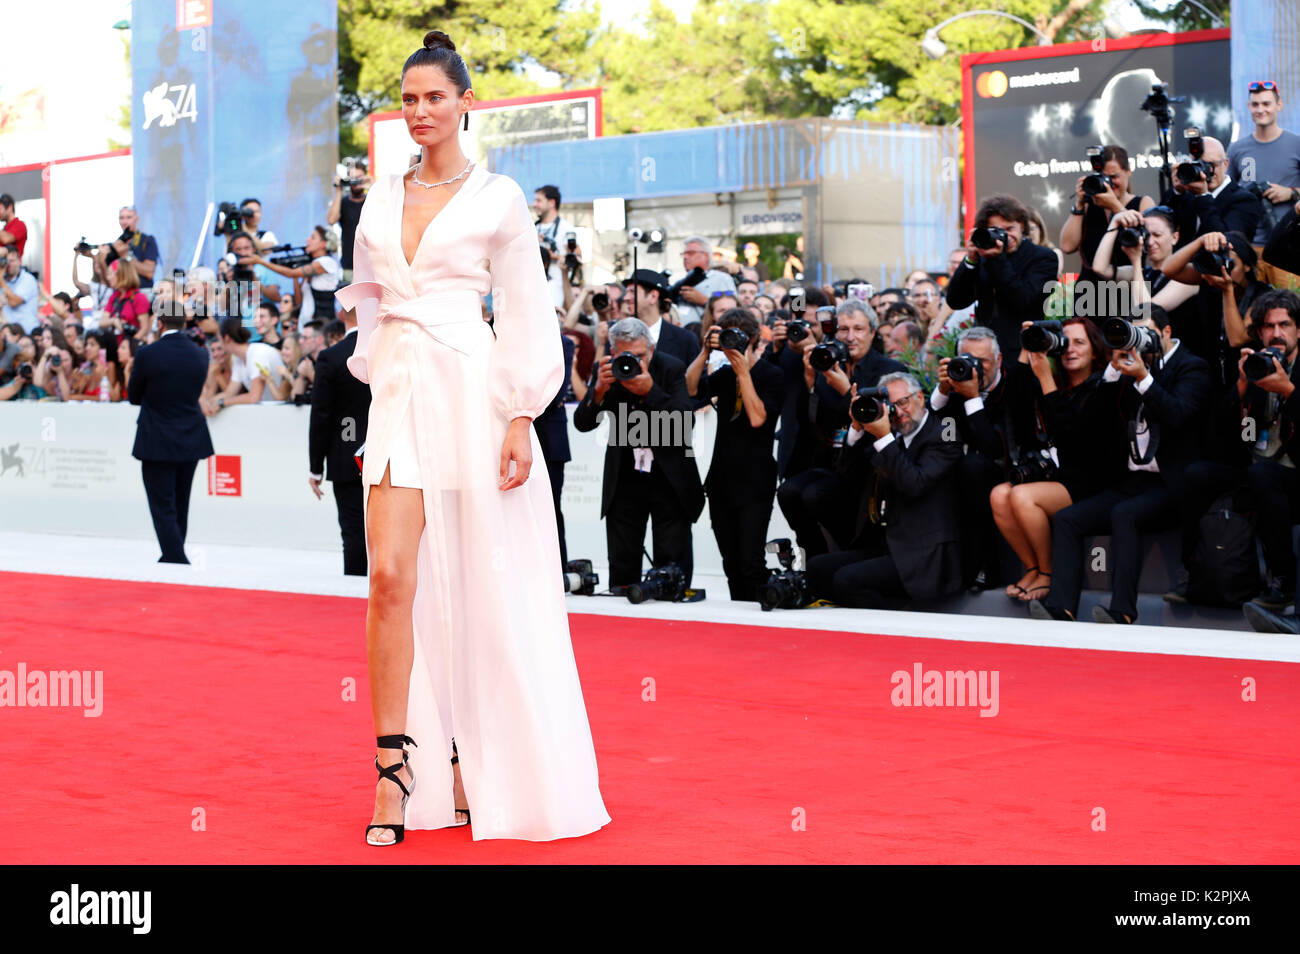 Venice, Italy. 30th Aug, 2017. Bianca Balti attending the 'Downsizing' premiere and opening of the 74th Venice International Film Festival at the Palazzo del Cinema on August 30, 2017 in Venice, Italy. Credit: Geisler-Fotopress/Alamy Live News - Stock Image